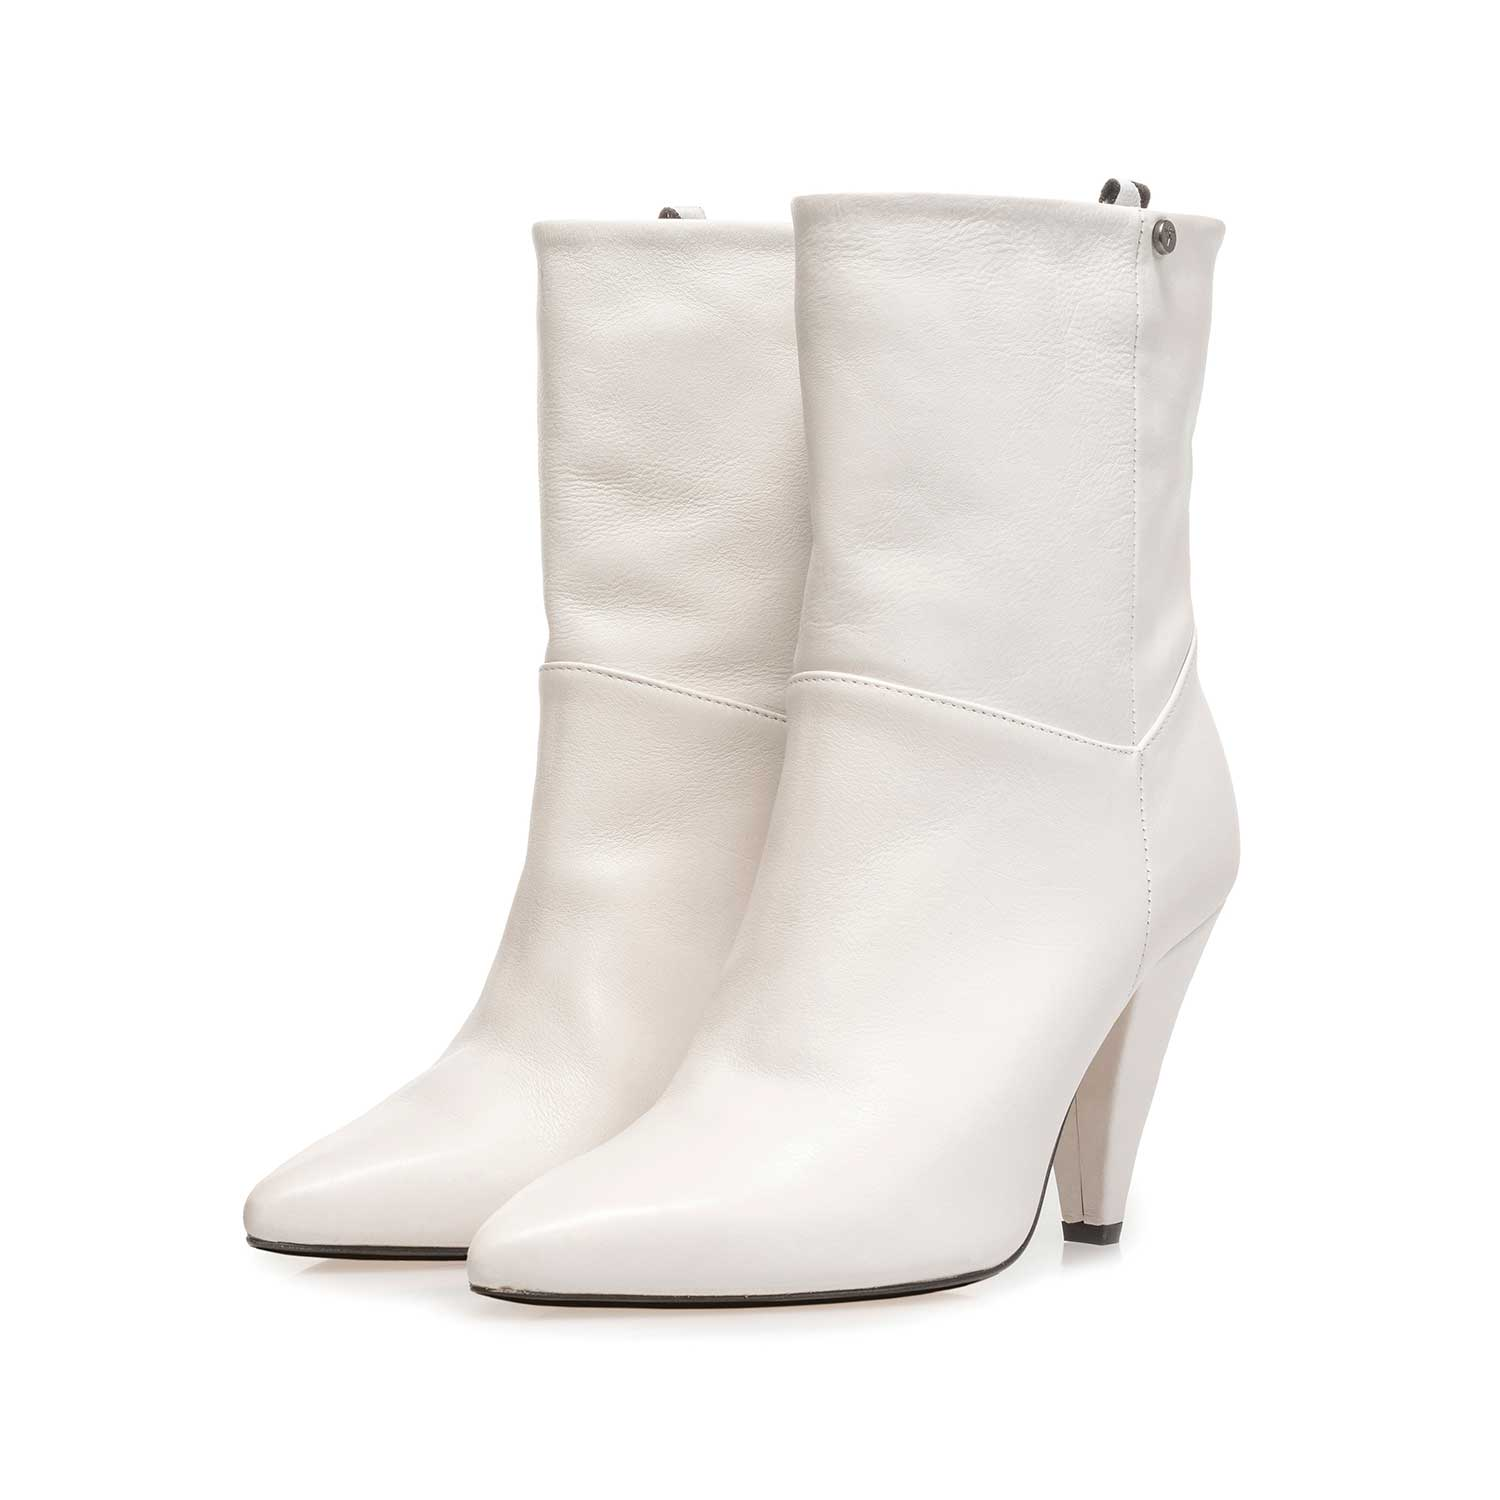 85630/00 - Off-white nappa leather high boots